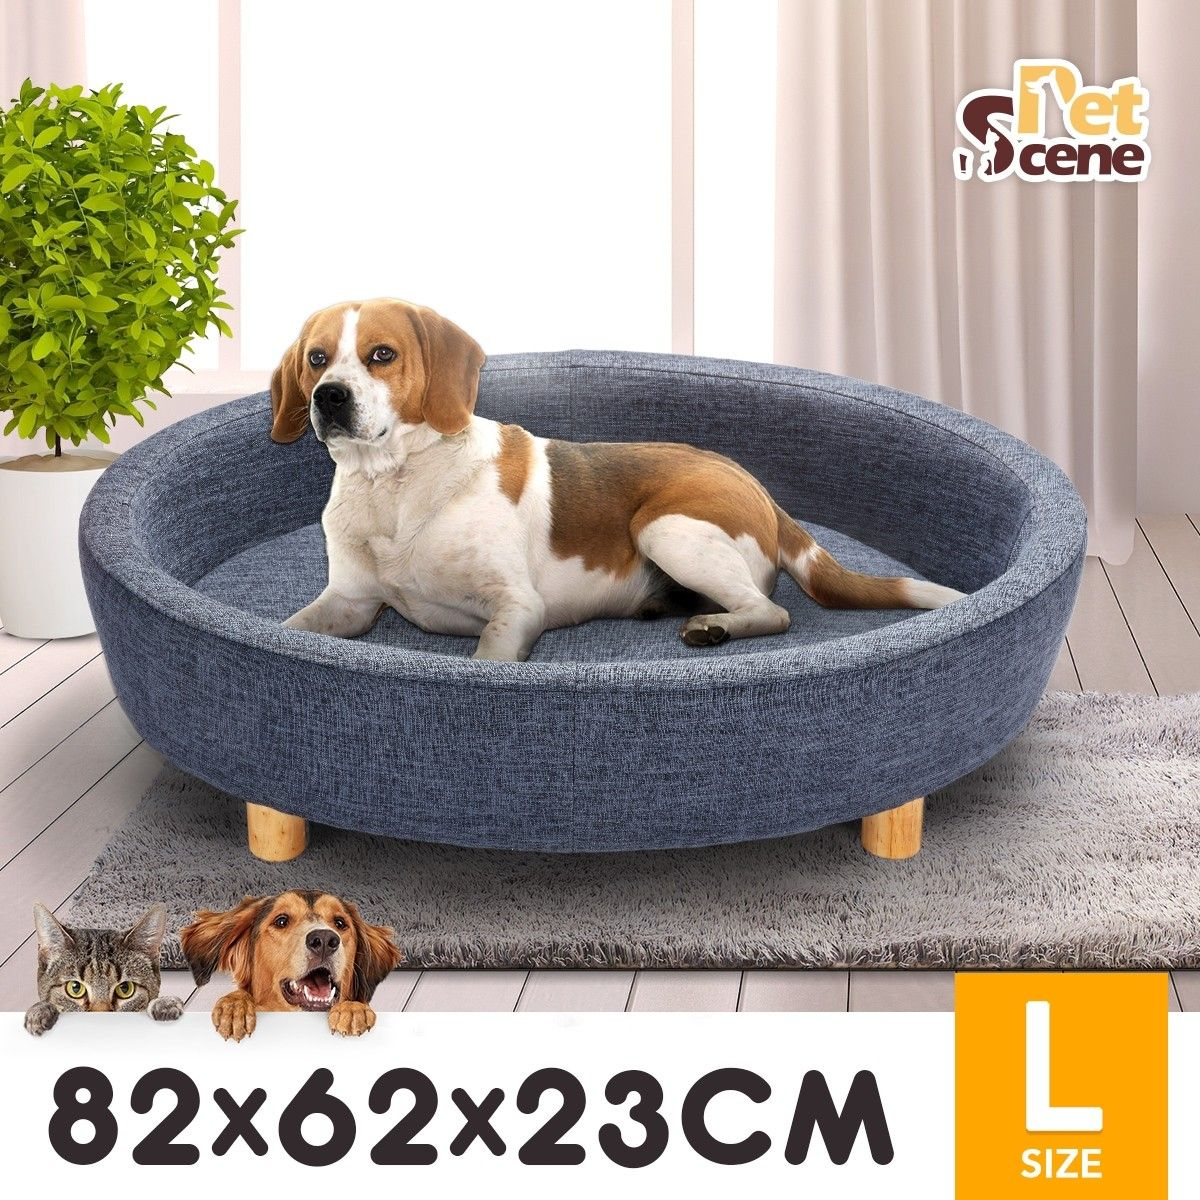 Petsure 35 43 49 Inches Outdoor Elevated Dog Bed Cooling Raised Dog Cot For Extra Large Medium Small Dogs Portable Raised Dog Beds Dog Cots Elevated Dog Bed